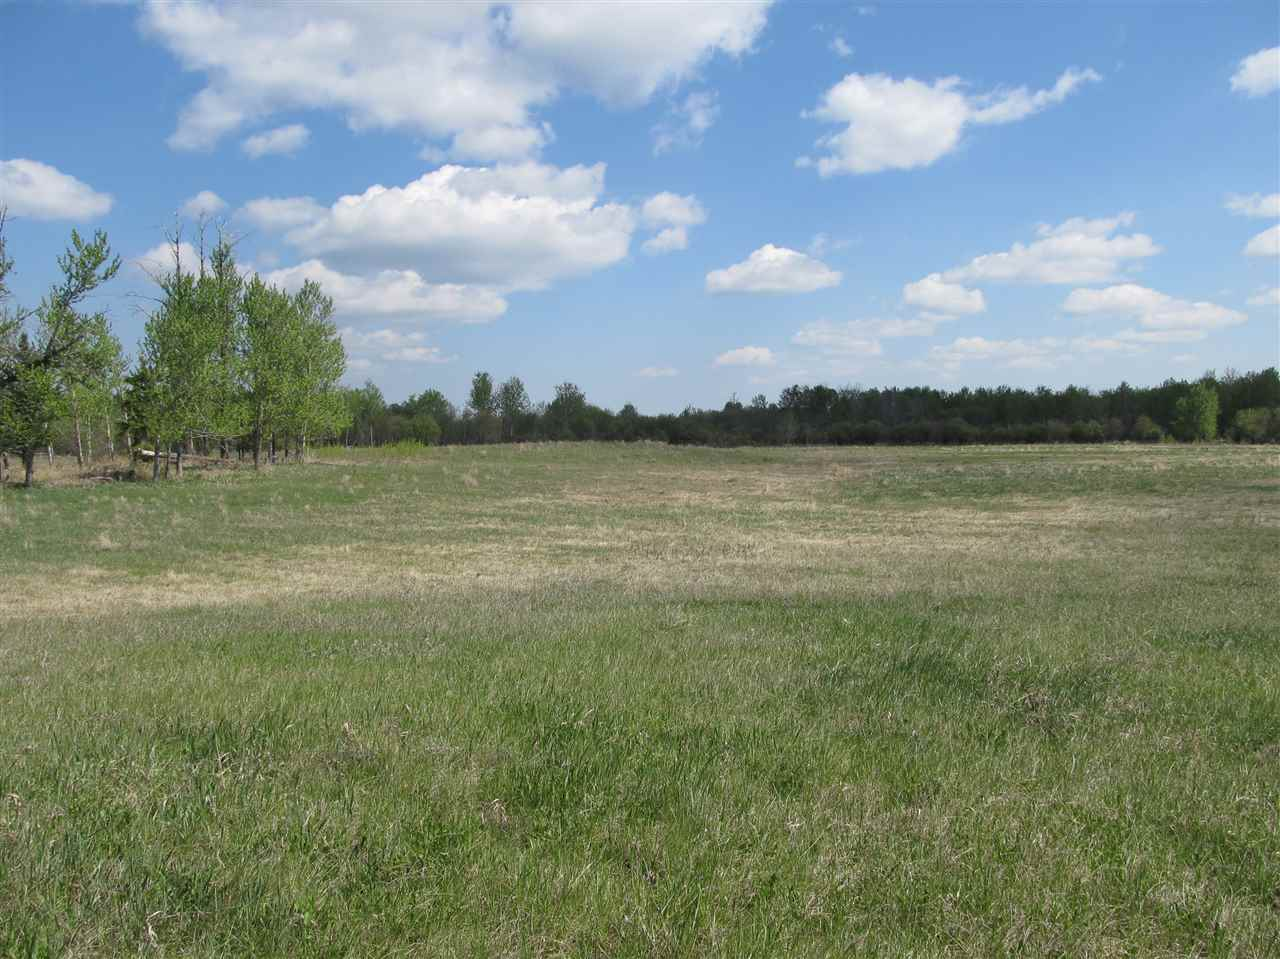 Photo 3: RR 204 HWY 661: Rural Thorhild County Rural Land/Vacant Lot for sale : MLS(r) # E4065910